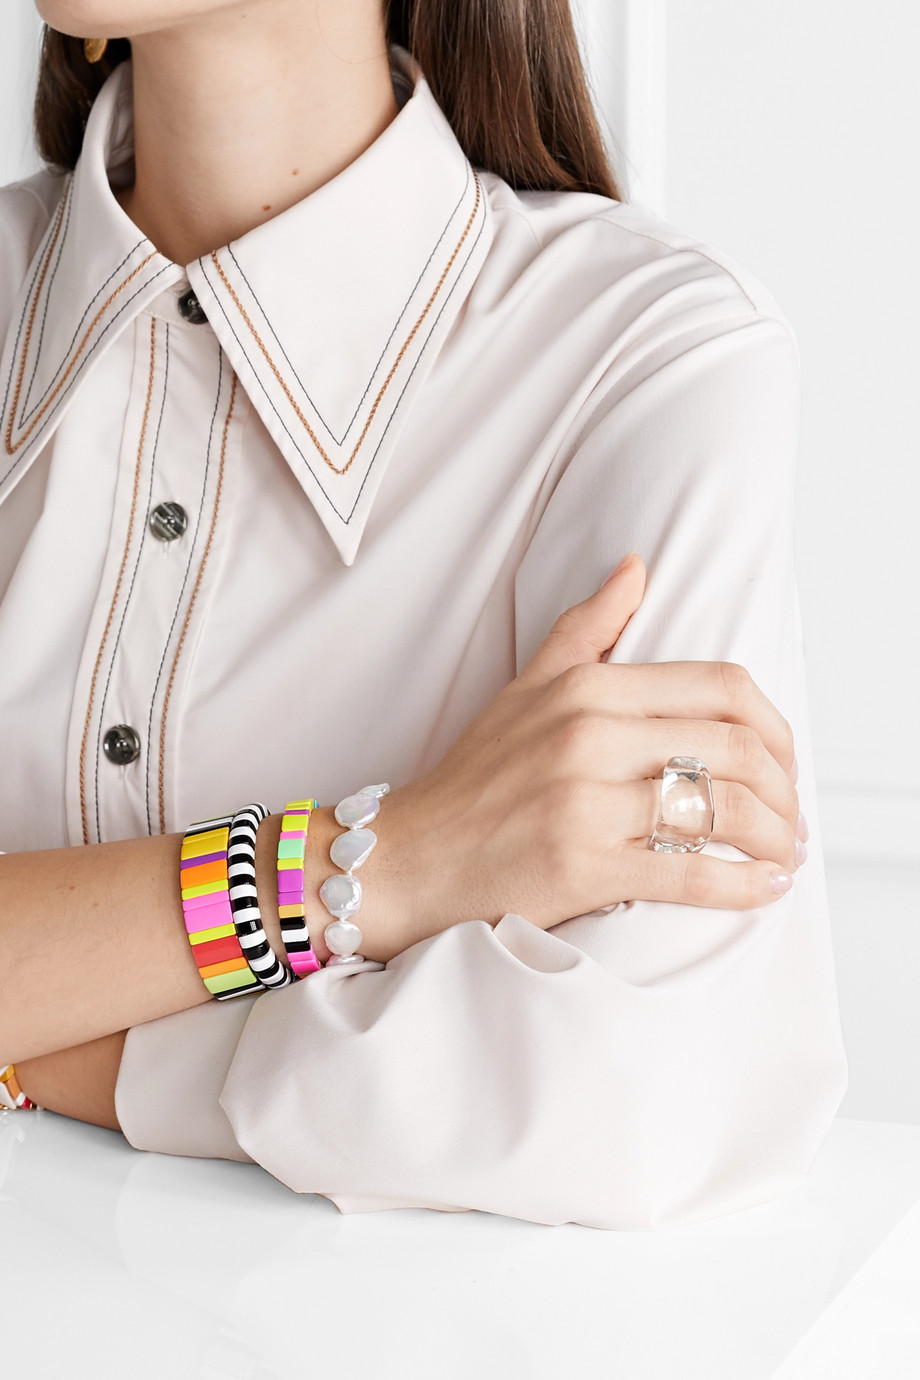 Roxanne Assoulin Life Of The Party set of three enamel and gold-tone bracelets